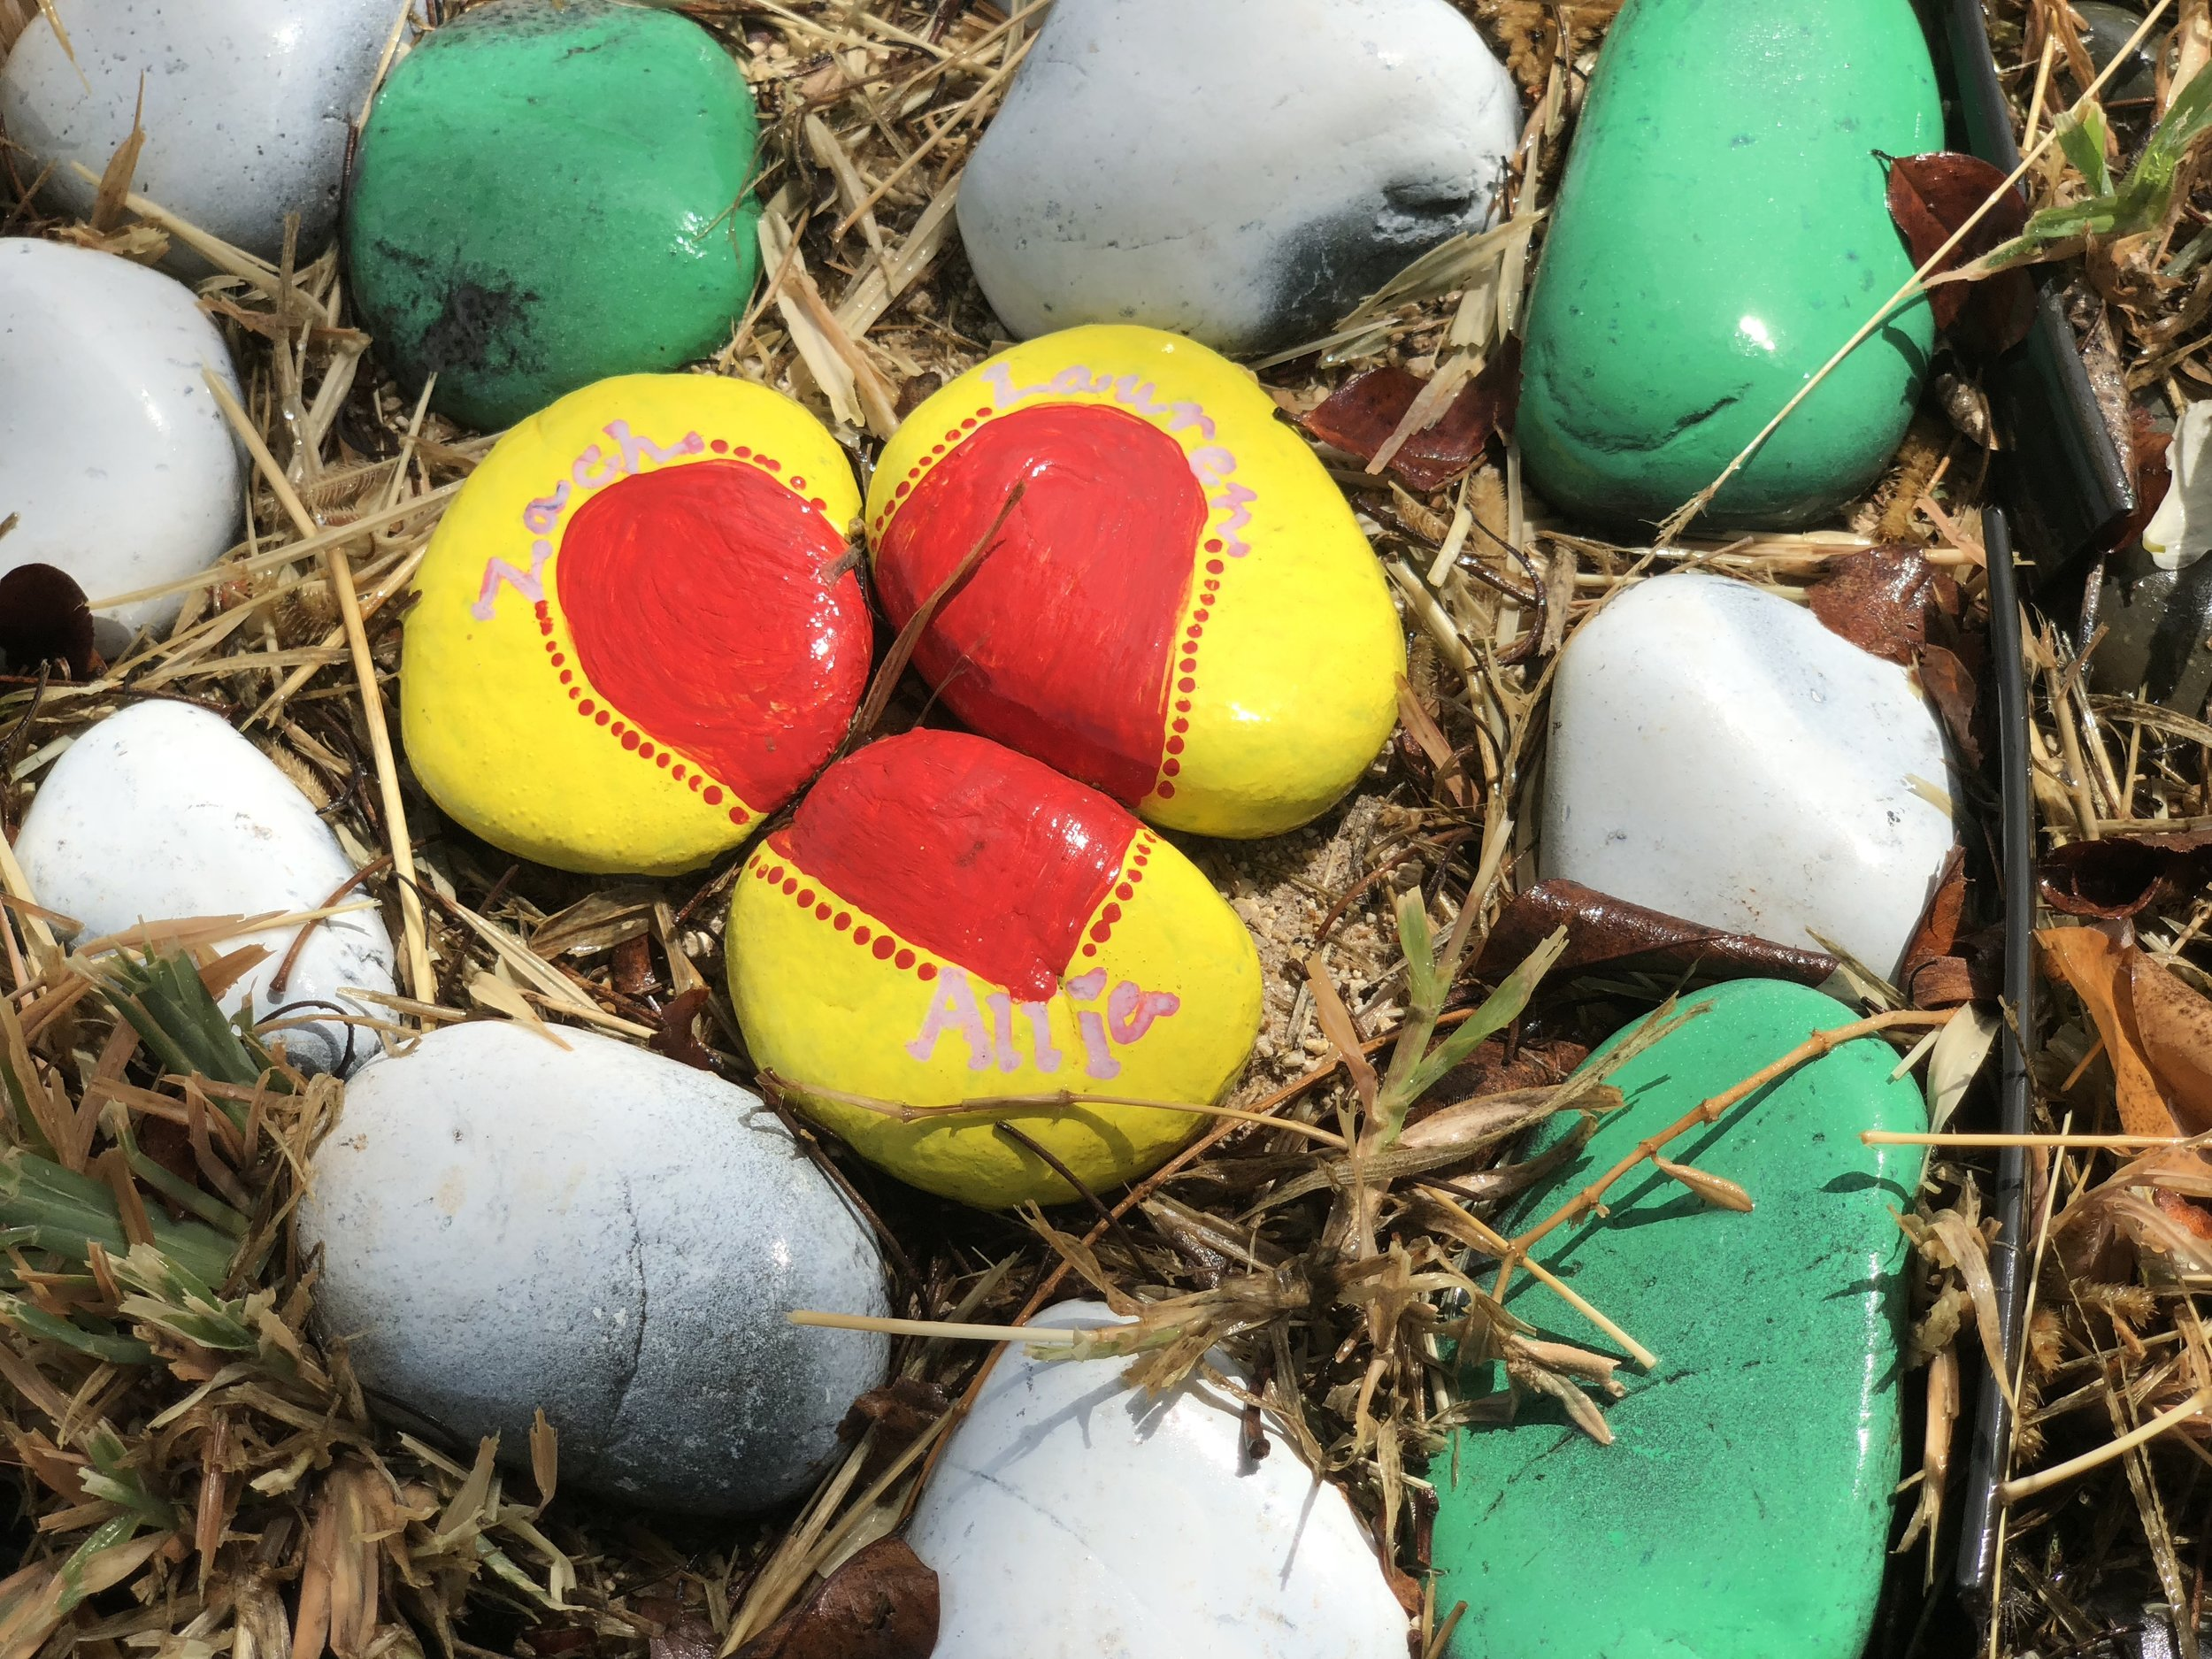 A set of three yellow and red-painted stones that are put together so that the red parts on each stone make the shape of a heart.